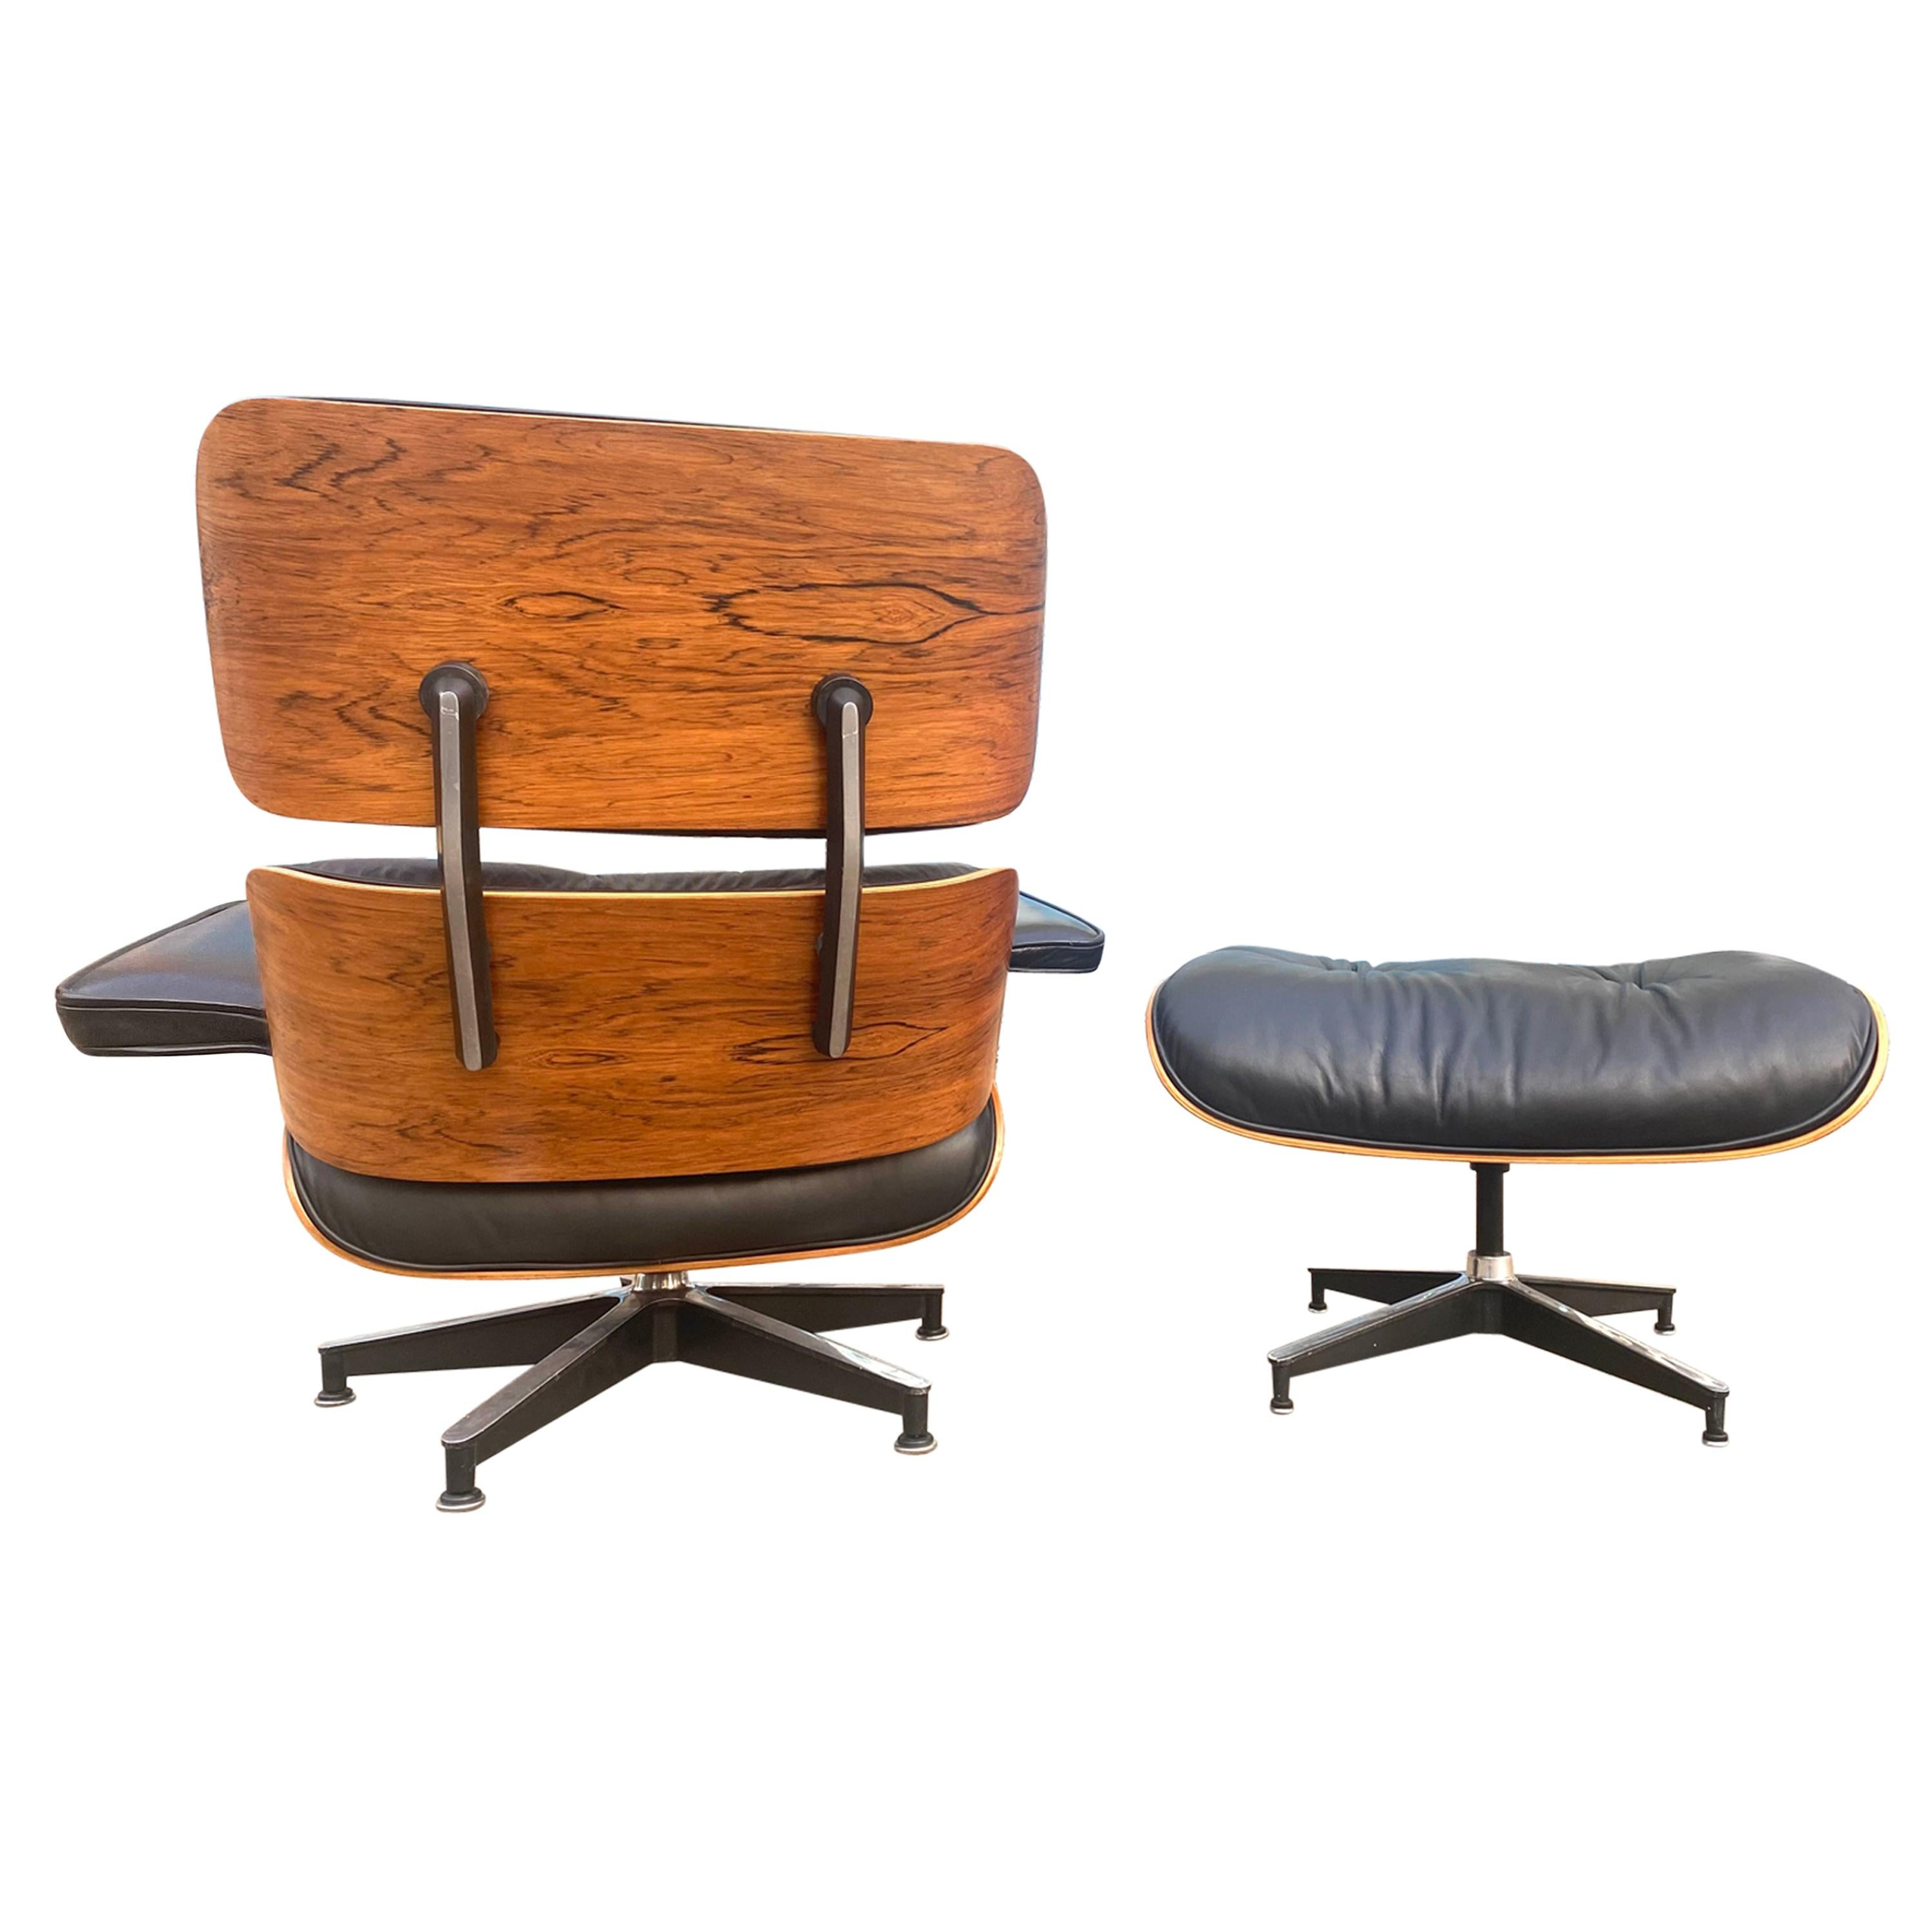 Gorgeous Herman Miller Eames Rosewood Lounge Chair and Ottoman